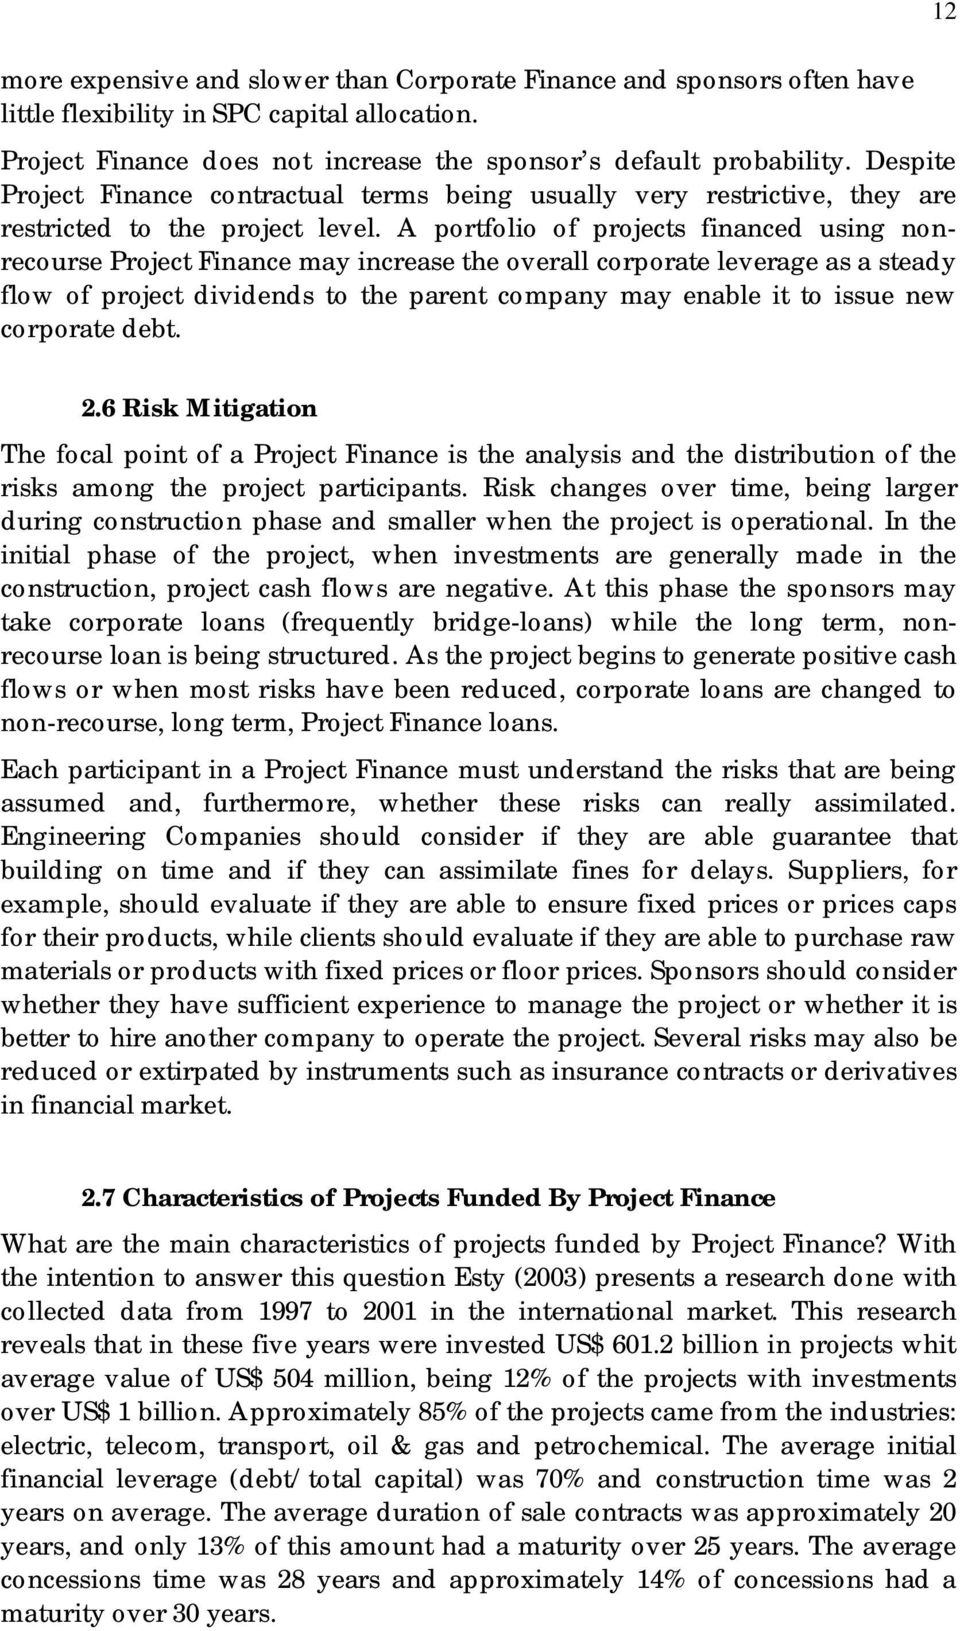 A portfolio of projects financed using nonrecourse Project Finance may increase the overall corporate leverage as a steady flow of project dividends to the parent company may enable it to issue new